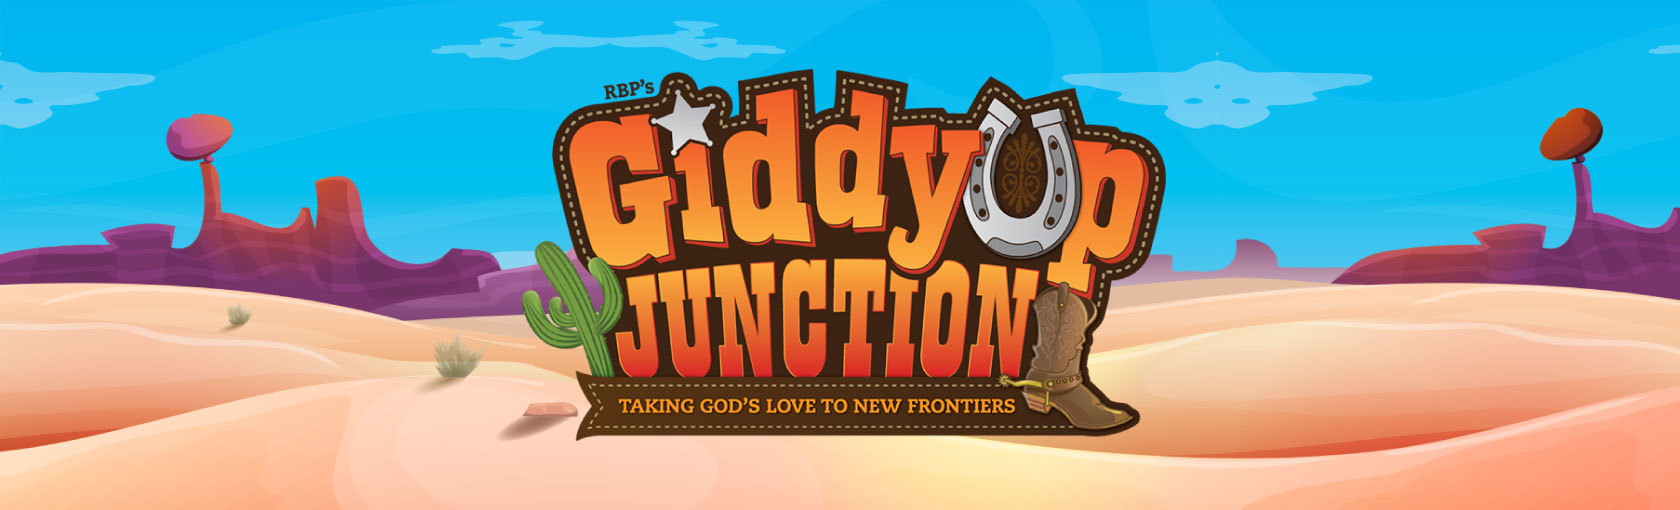 Giddyup Junction